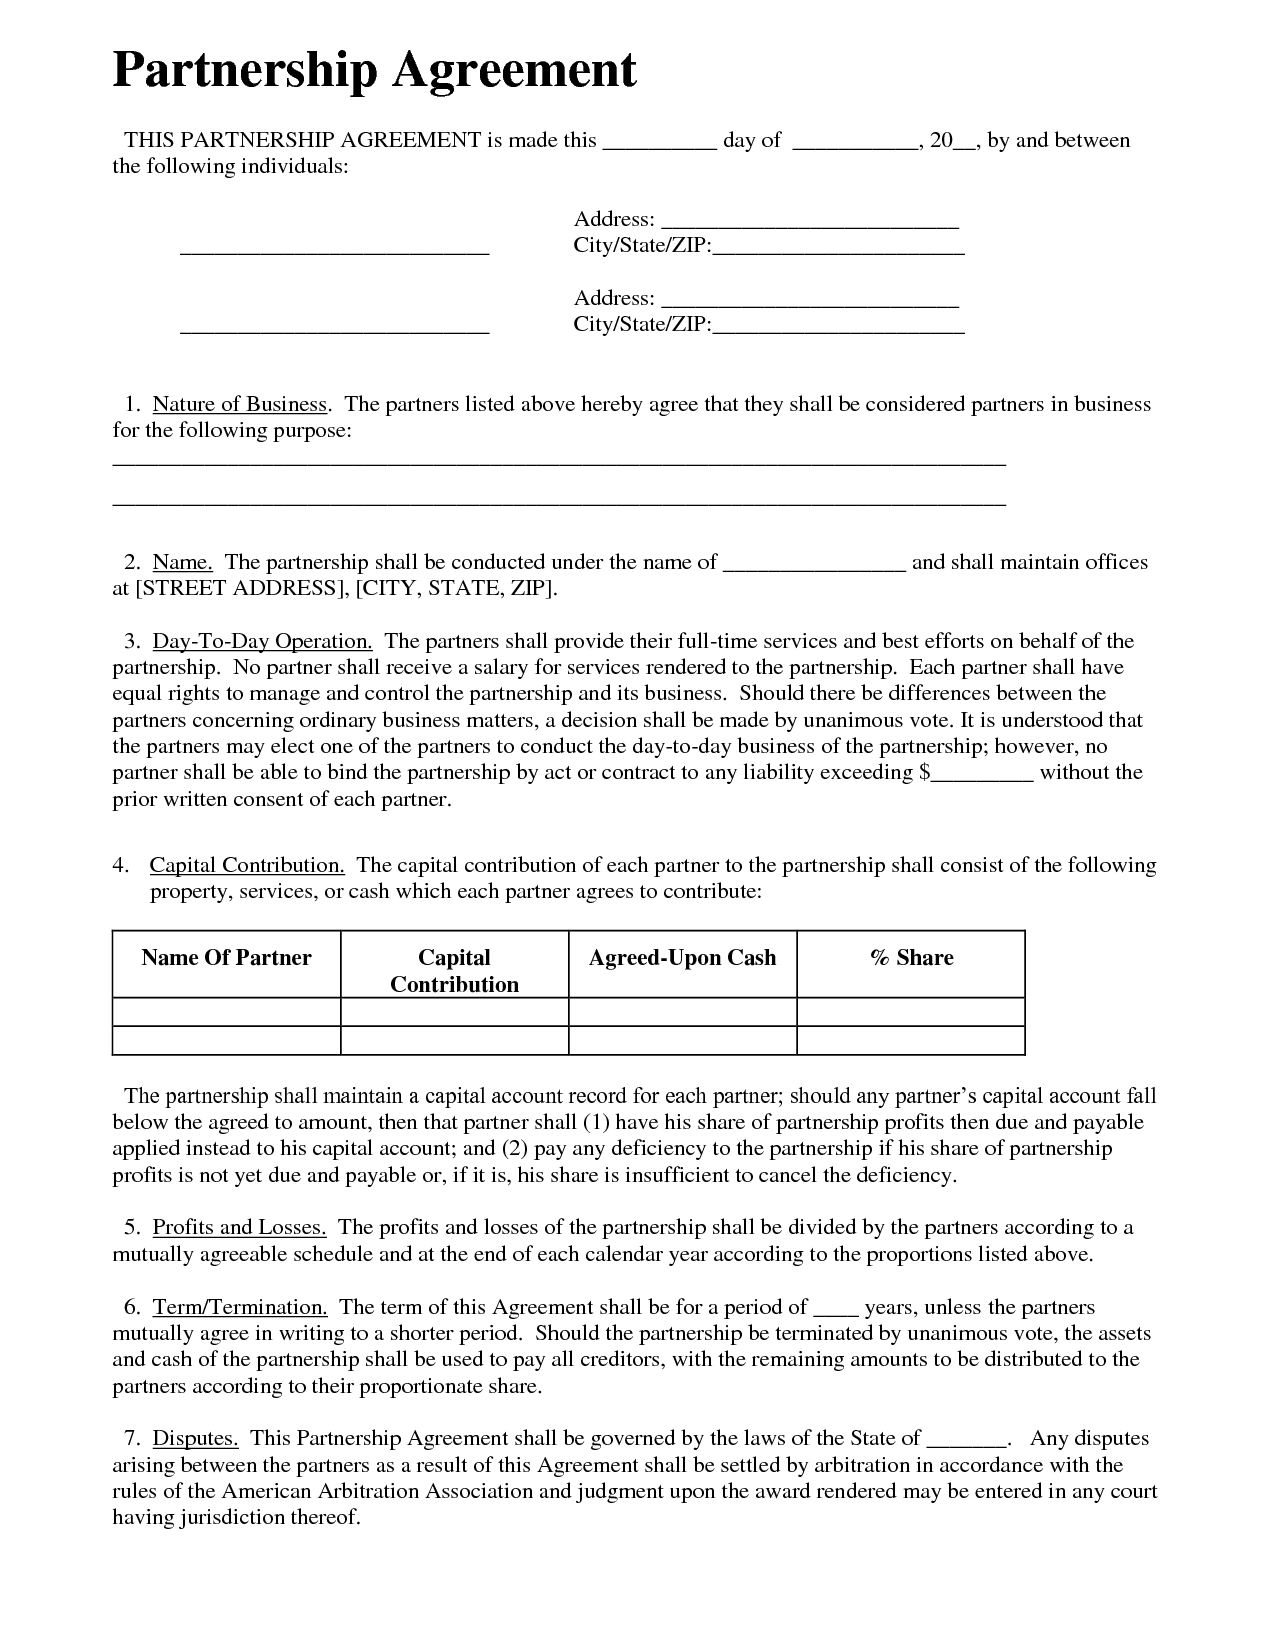 Business Partnership Agreement Template Freenload New Awesome Of With Free Small Business Partnership Agreement Template